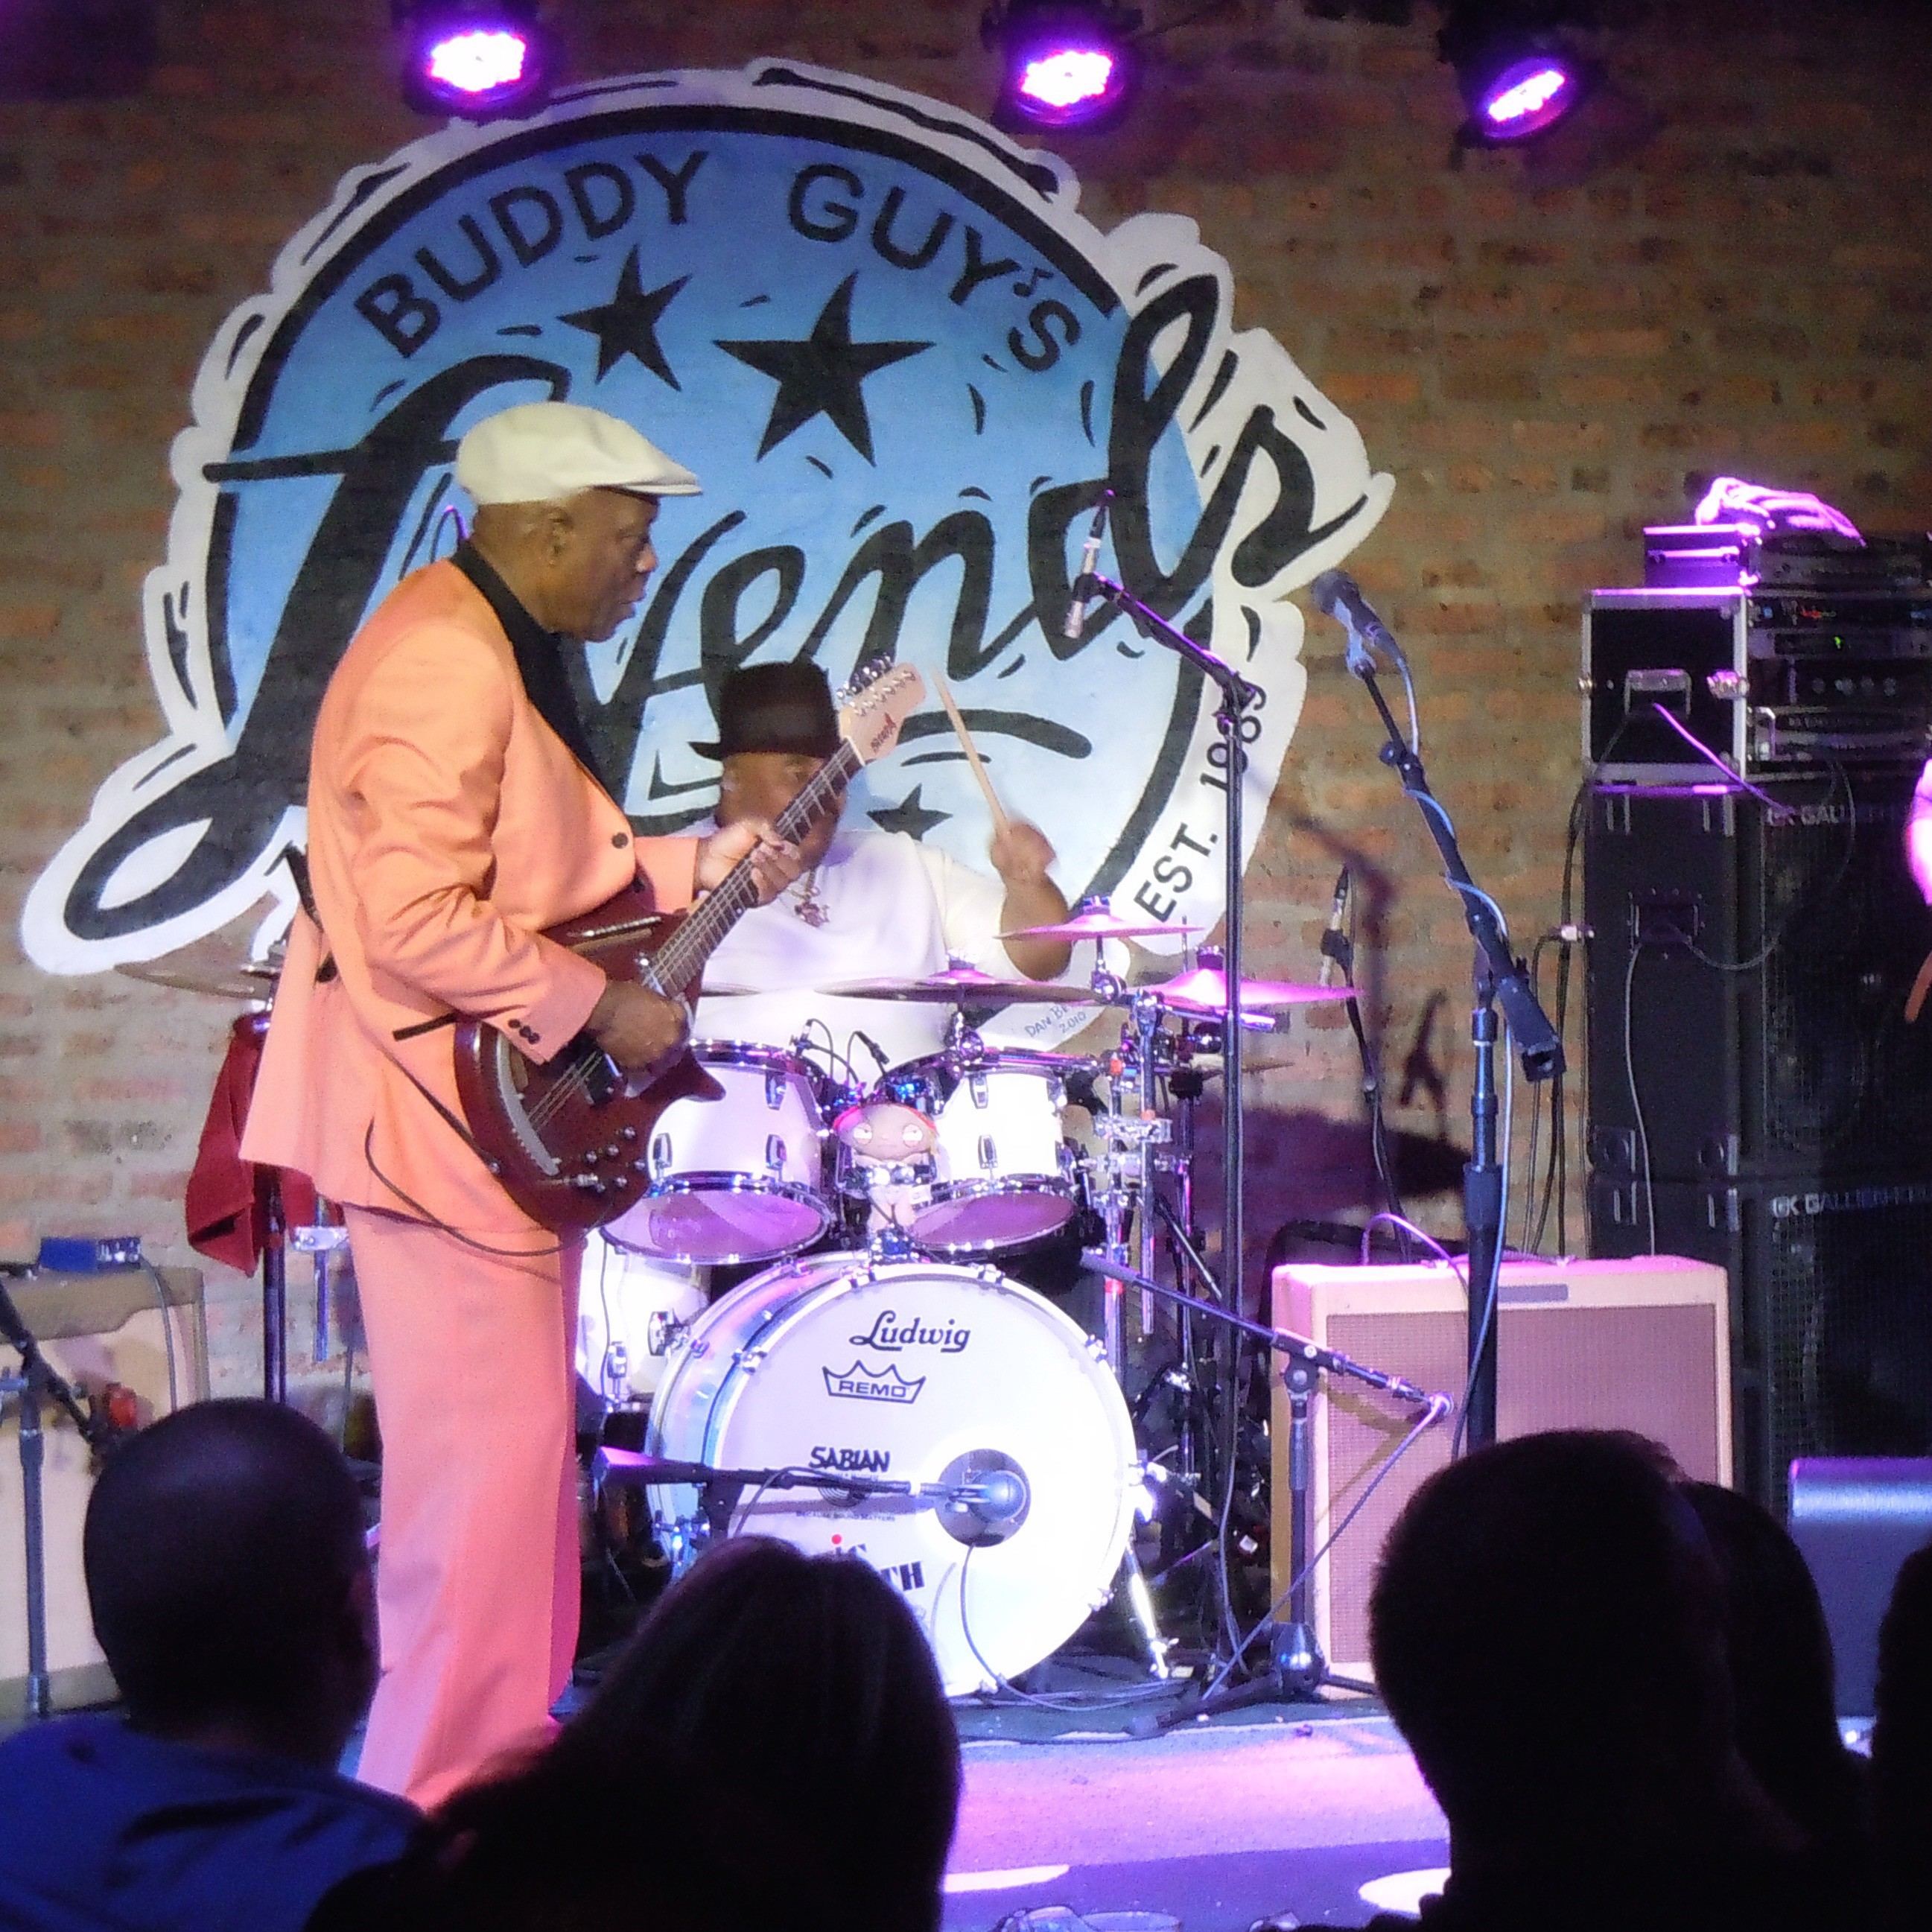 Buddy Guy's Legends | © Mickhintz/Wikipedia